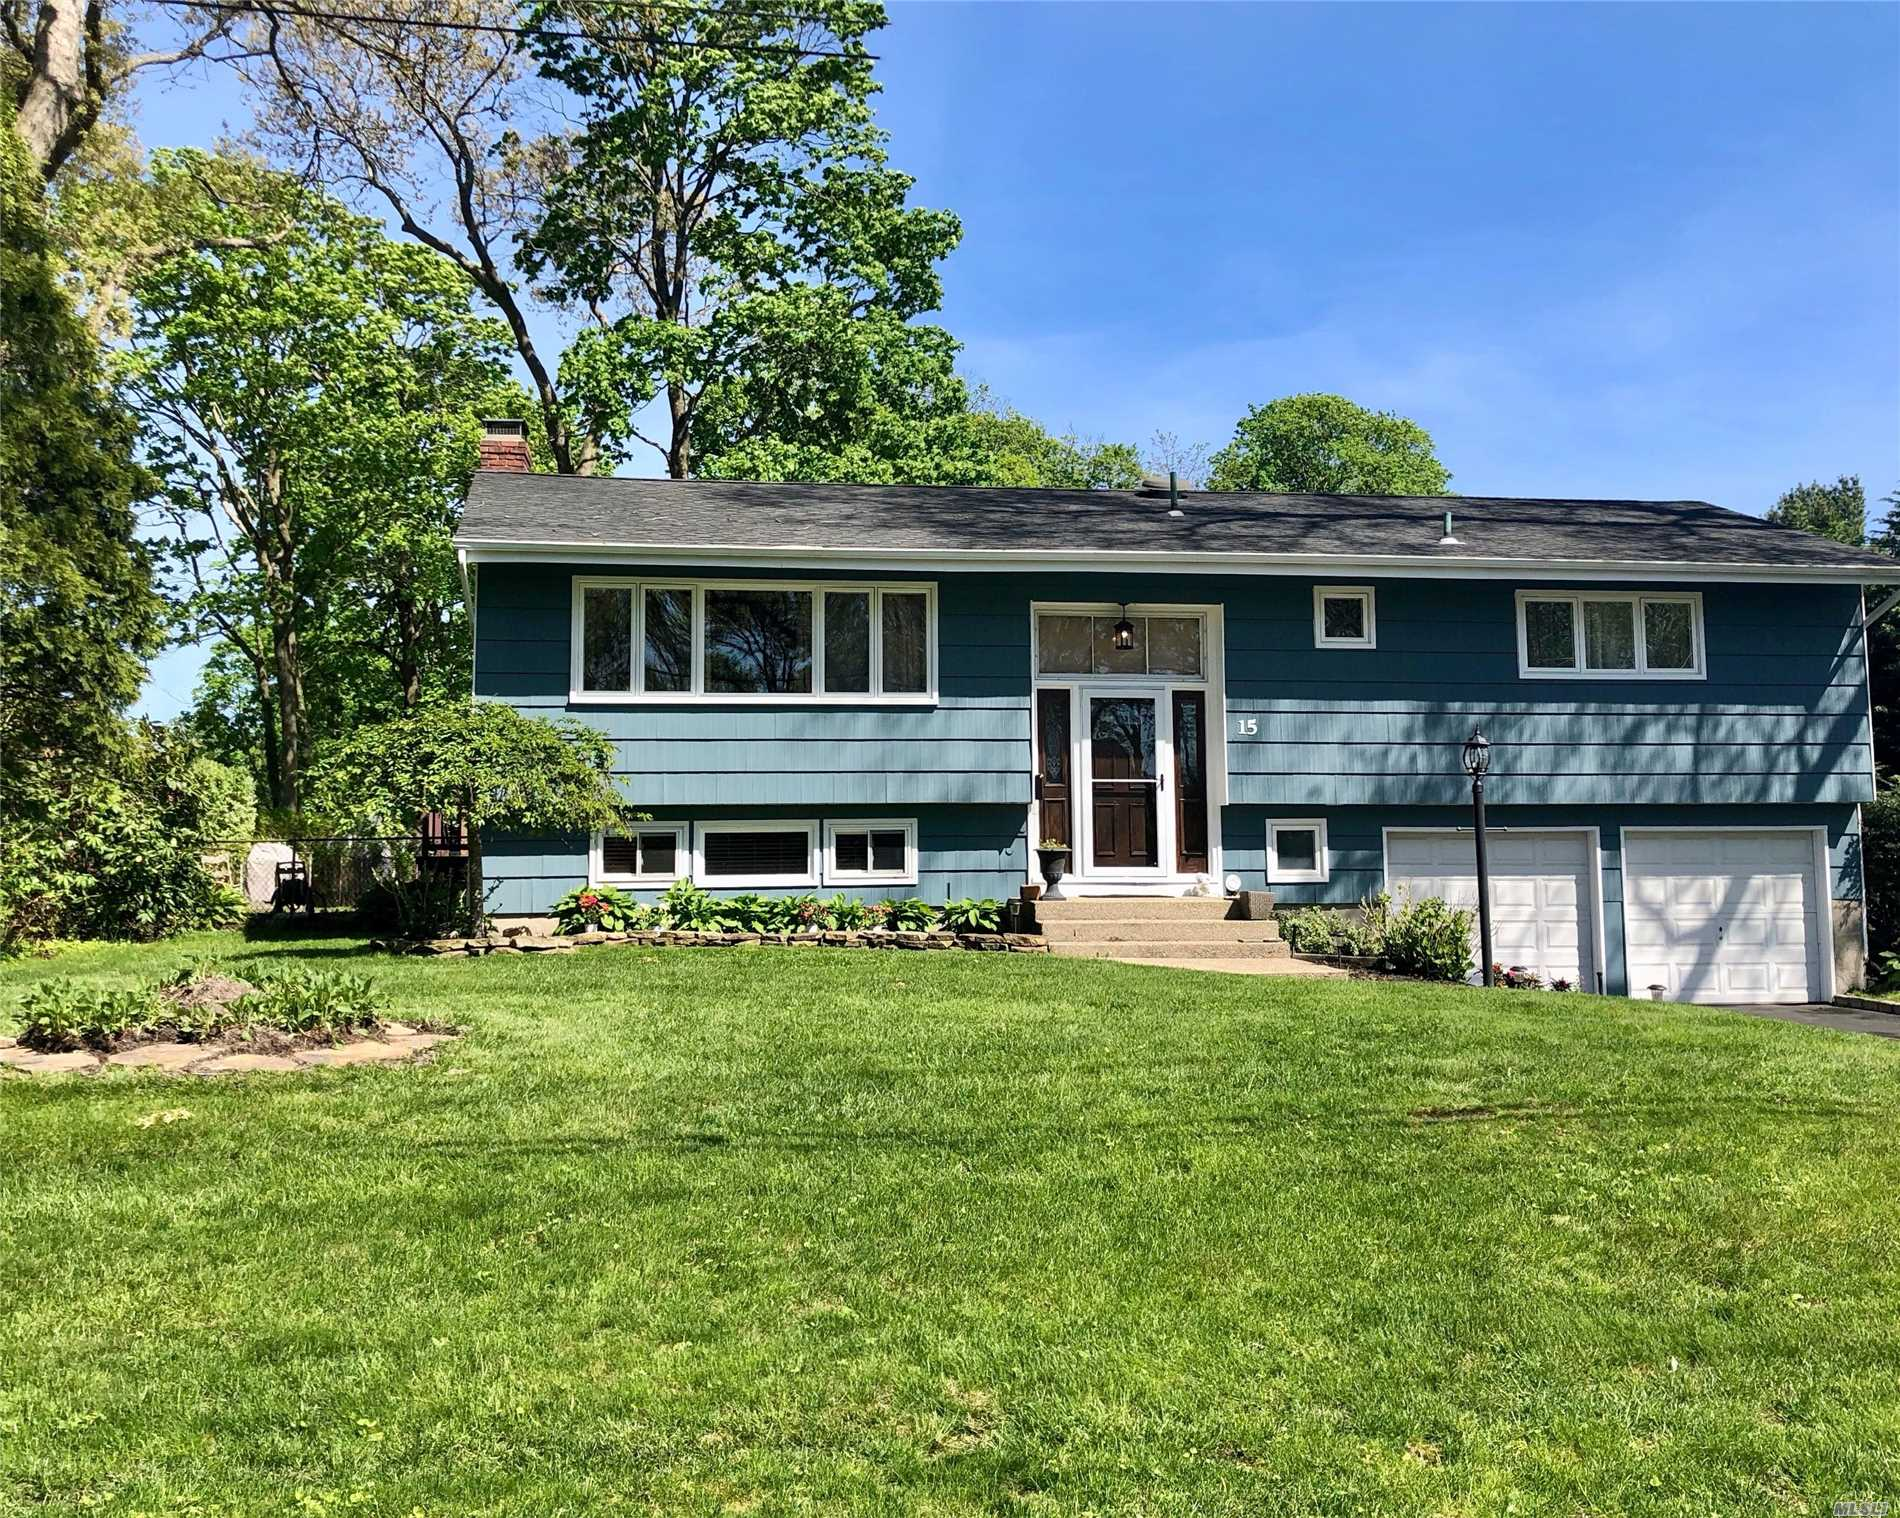 Photo of home for sale at 15 Baywood Ln, Bayport NY